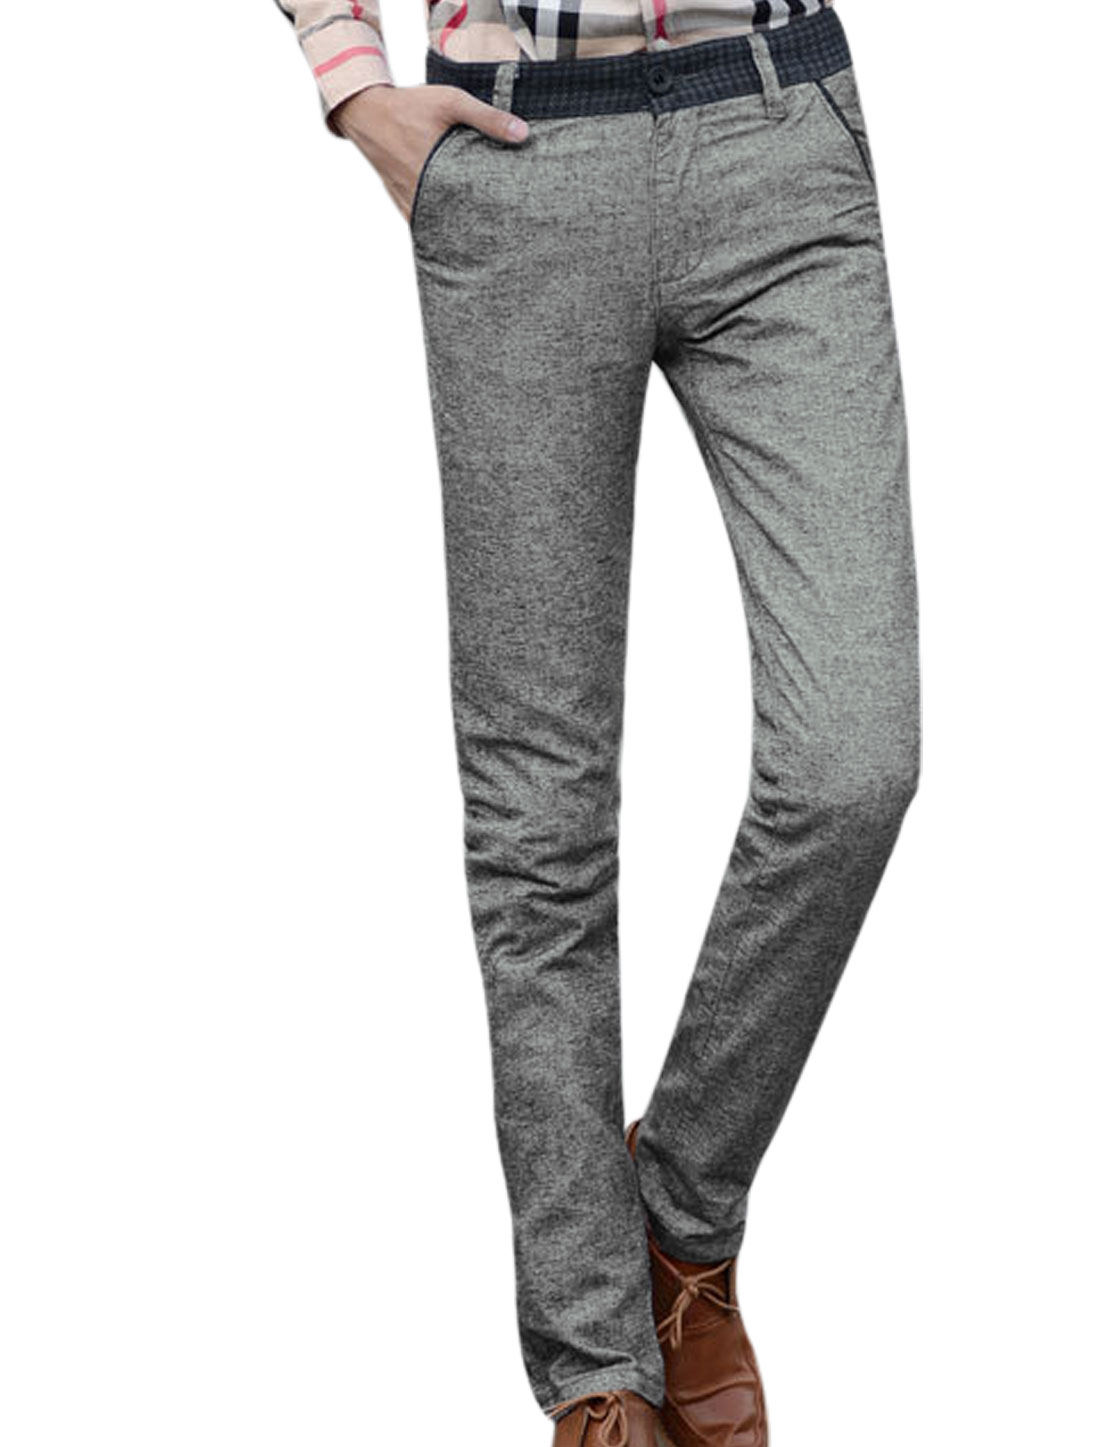 Men Two Back Flap Pockets Natural Waist Slim Fit Casual Pants Heather Gray W32